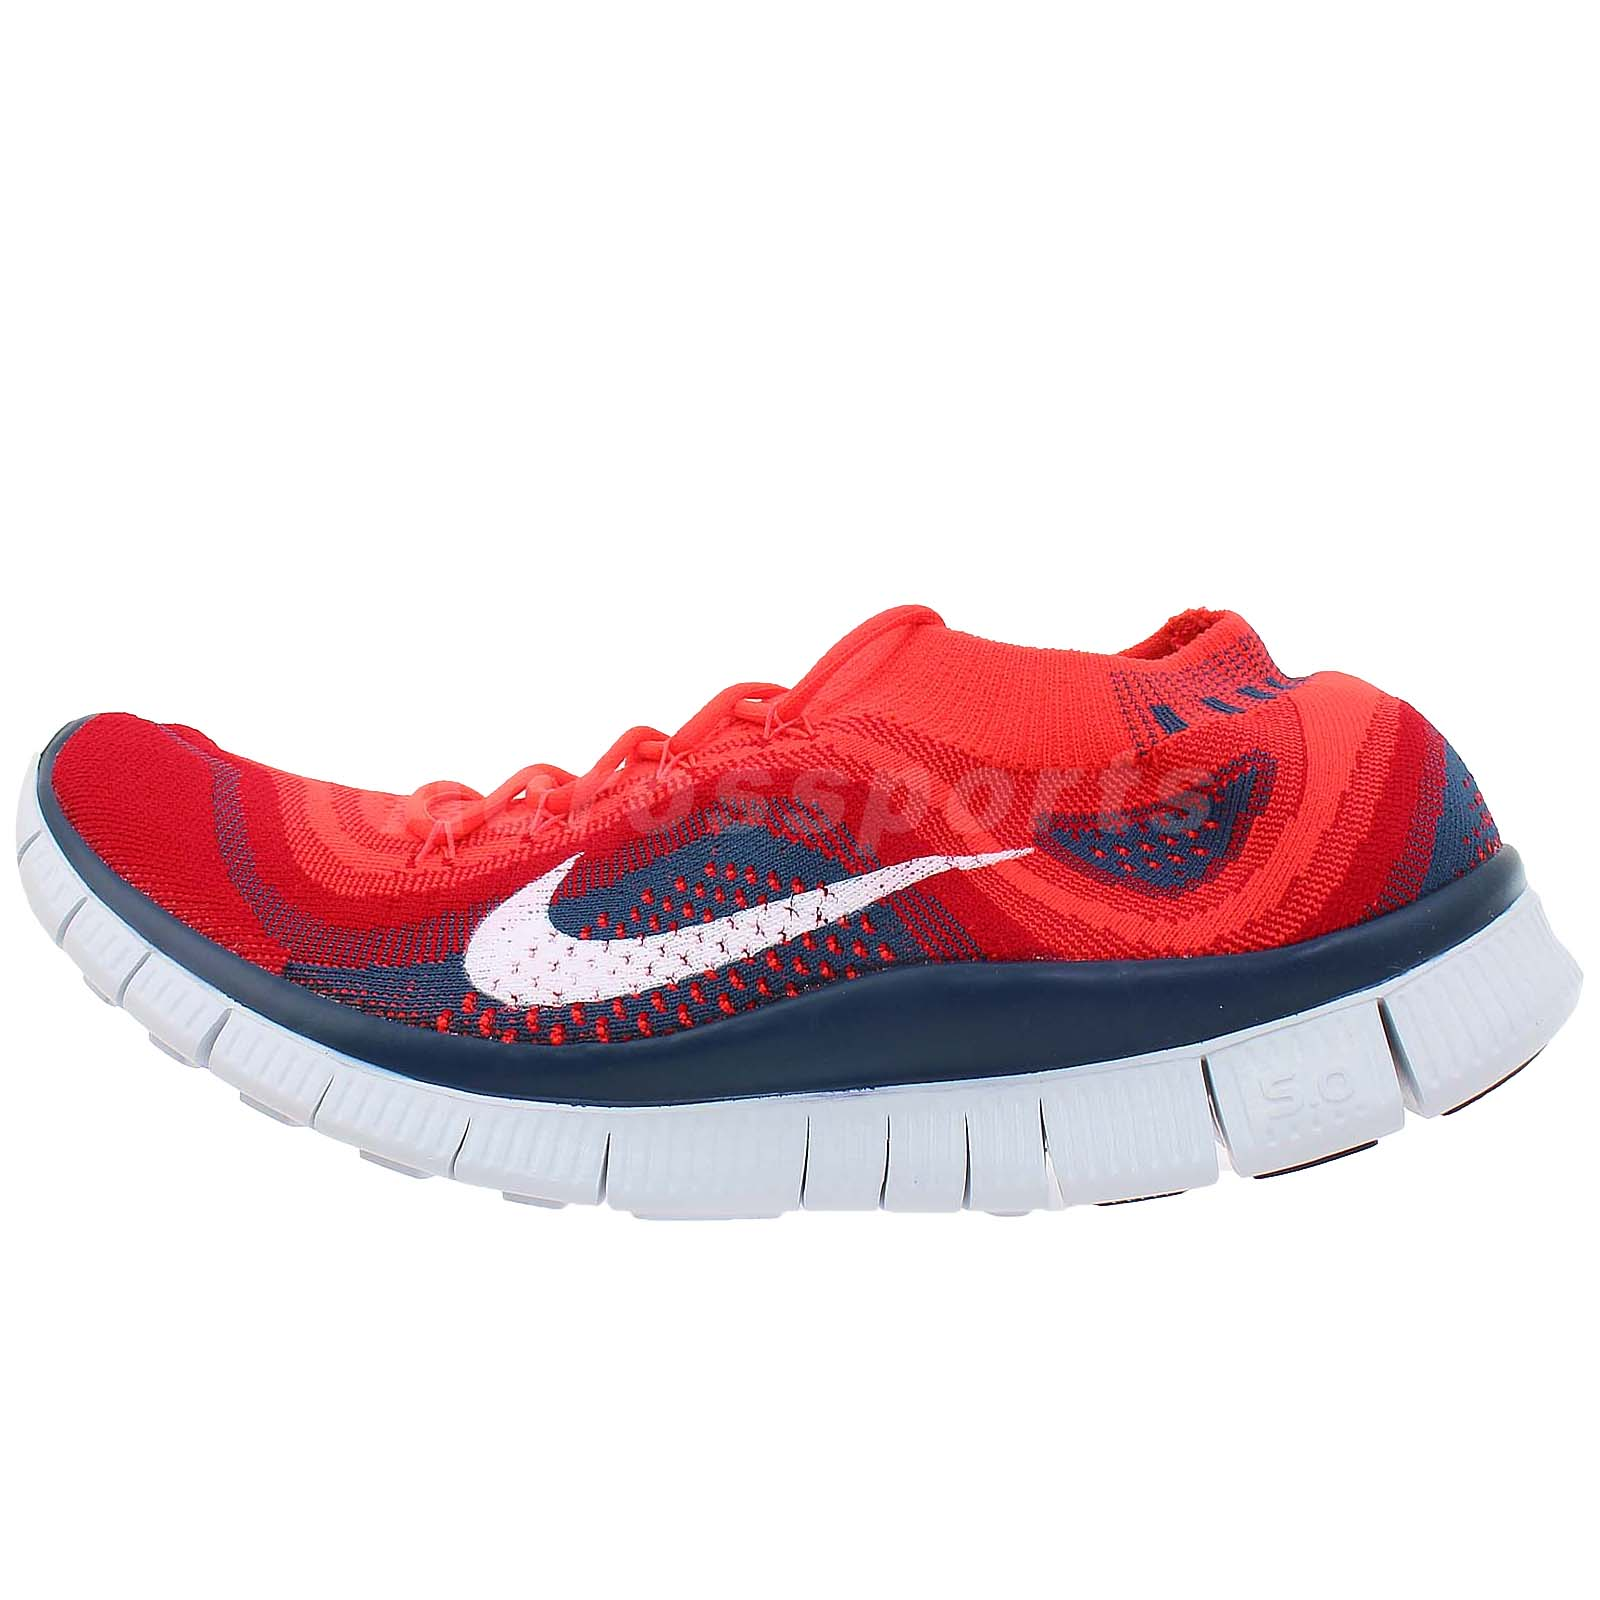 nike free run 5 0 flyknit soldes nike air max 1. Black Bedroom Furniture Sets. Home Design Ideas